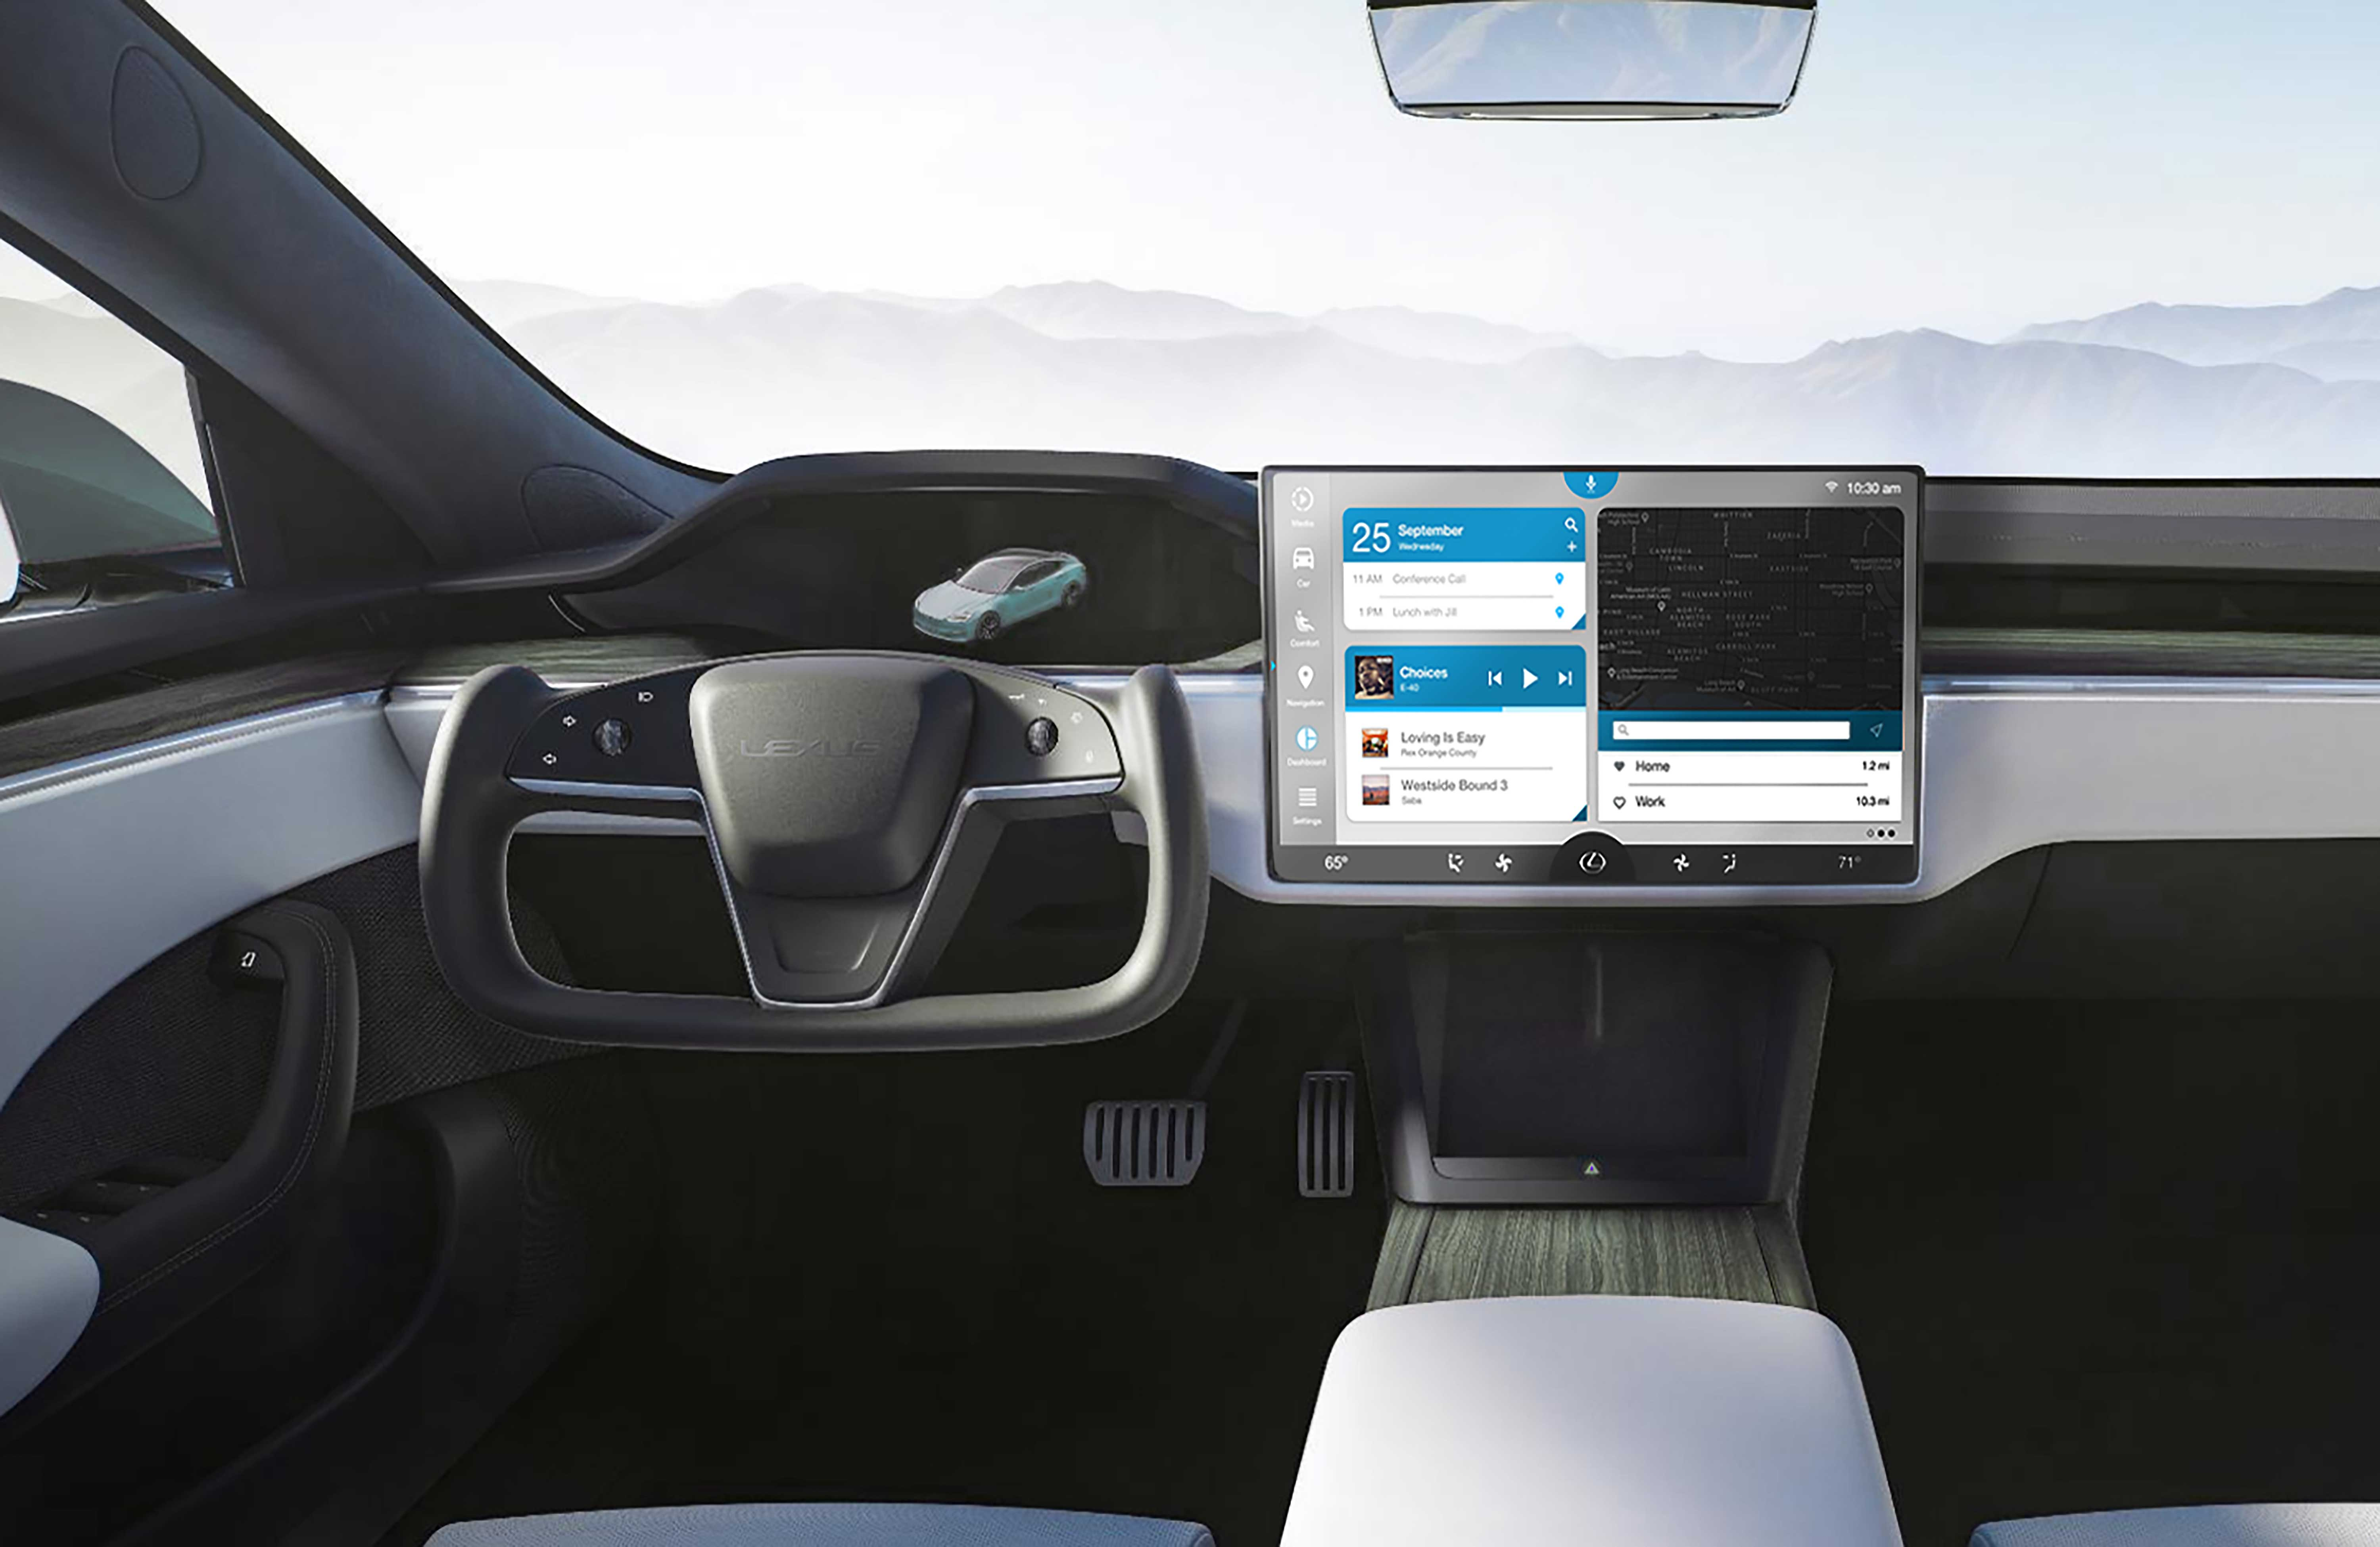 Sample image for the Lexus self driving car concept